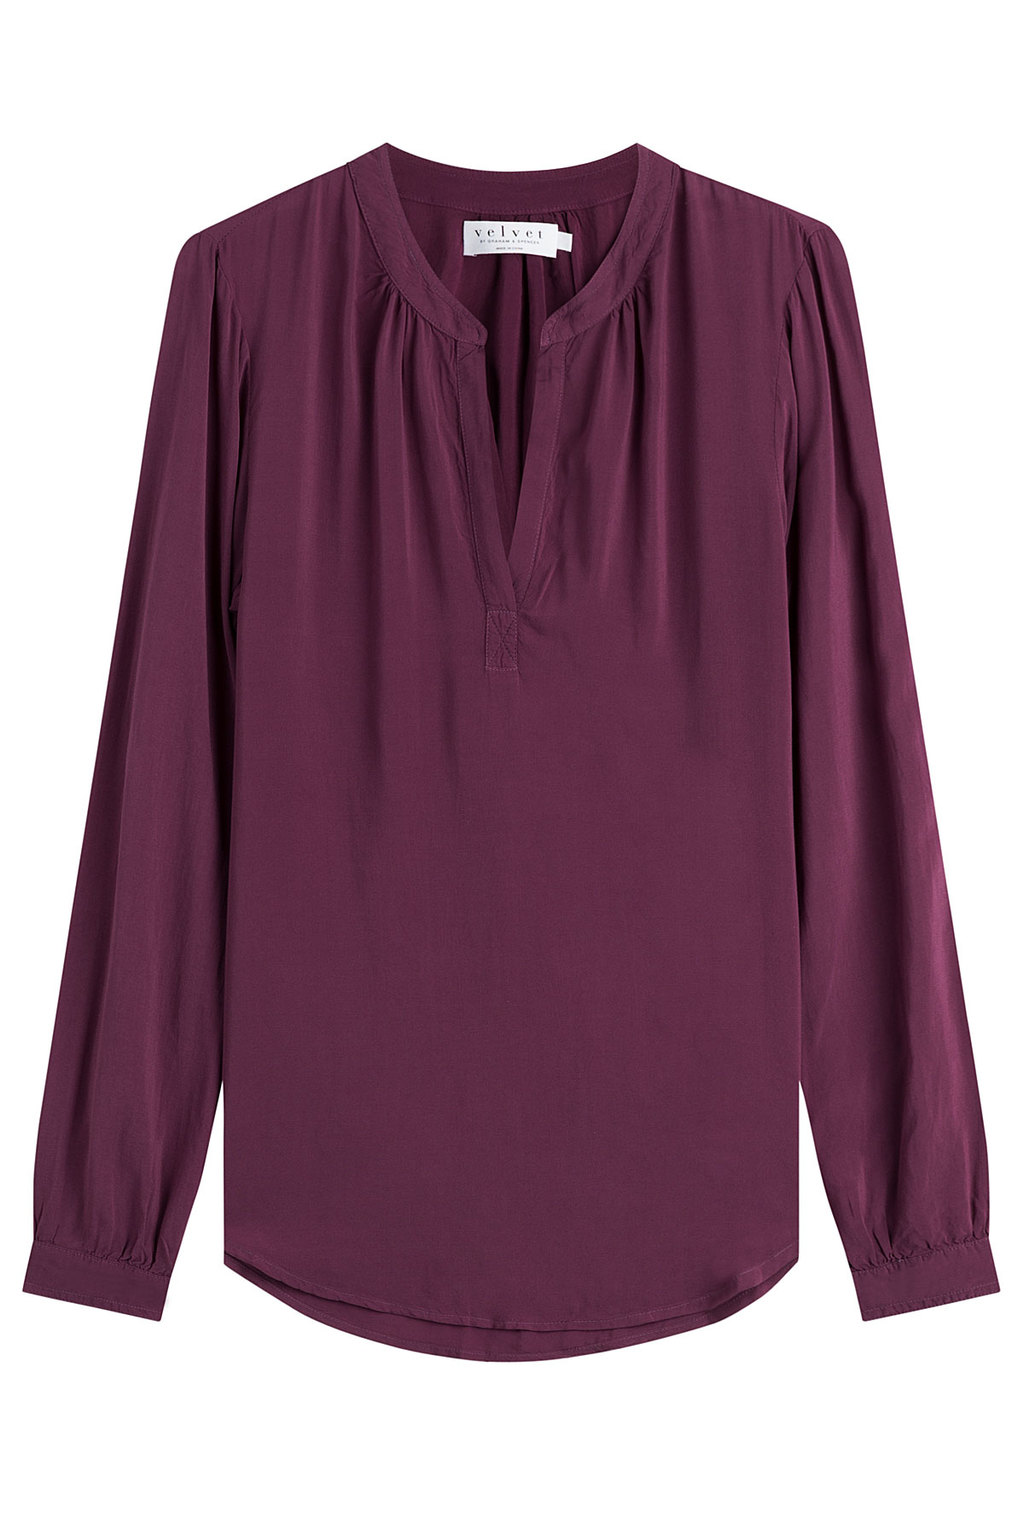 Fluid Blouse - pattern: plain; style: blouse; predominant colour: aubergine; occasions: casual, creative work; length: standard; neckline: collarstand & mandarin with v-neck; fibres: viscose/rayon - 100%; fit: loose; sleeve length: long sleeve; sleeve style: standard; pattern type: fabric; texture group: jersey - stretchy/drapey; season: a/w 2016; wardrobe: highlight